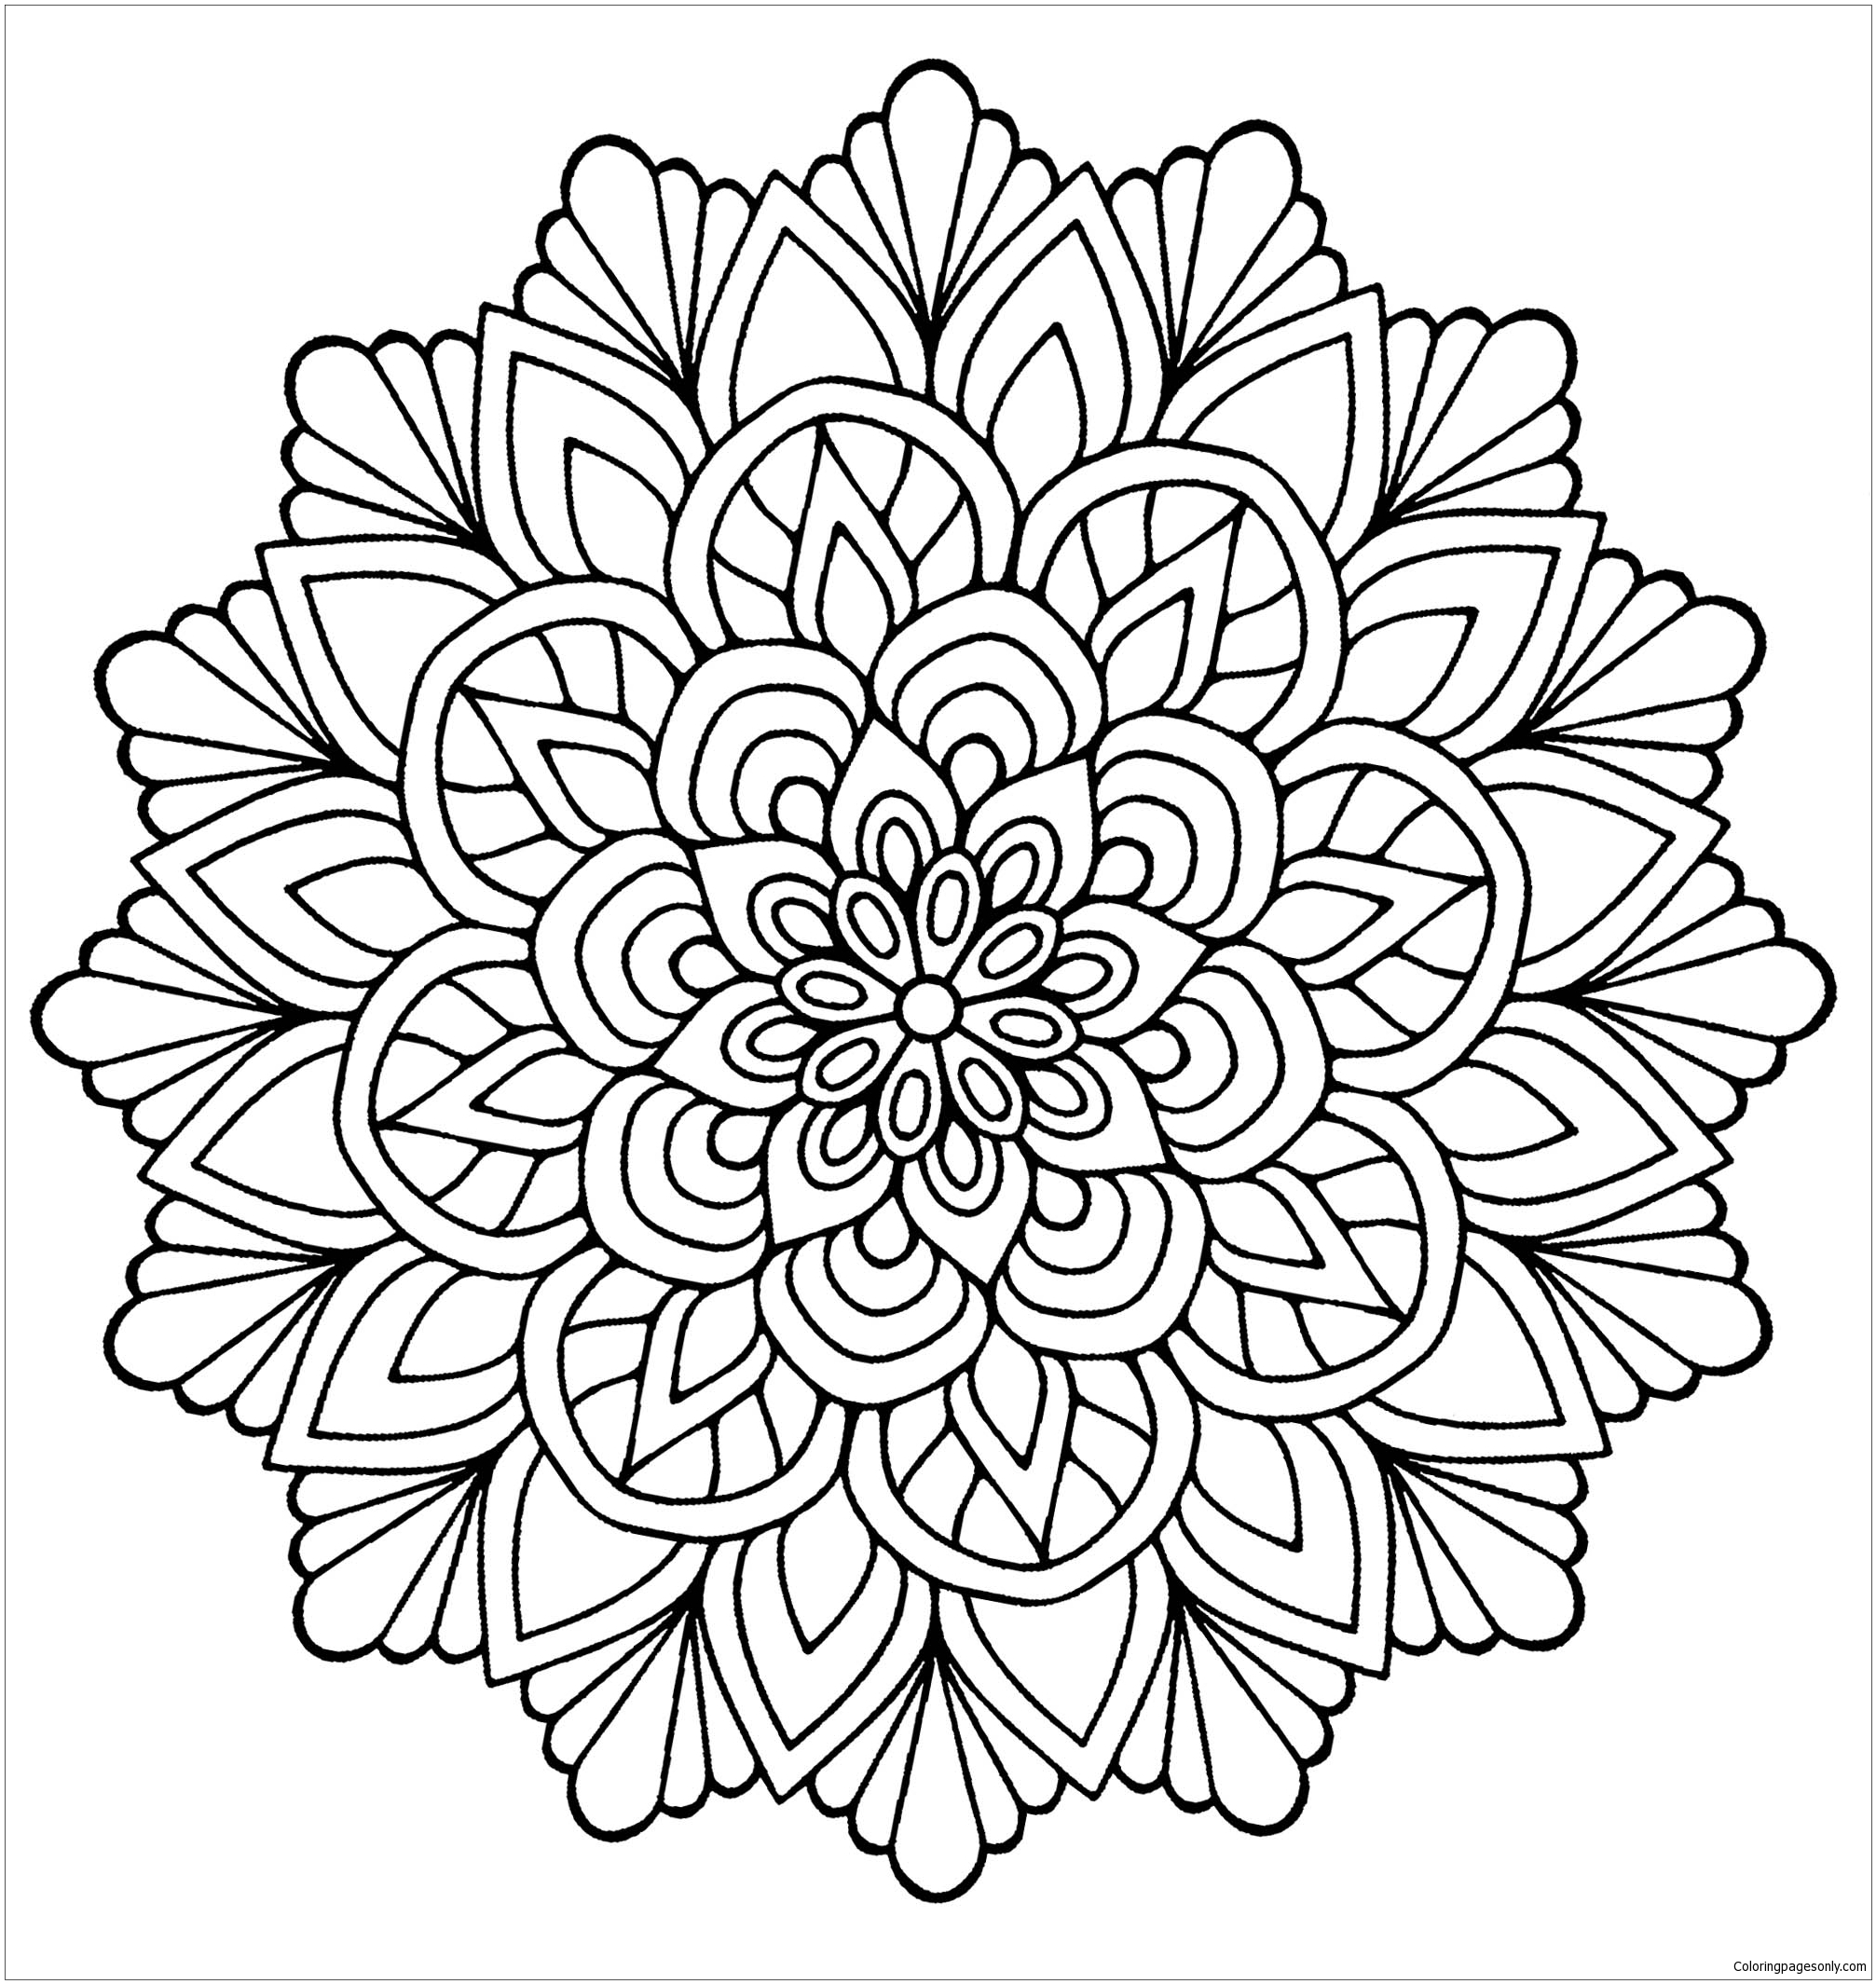 Mandala Flower With Leaves Coloring Page - Free Coloring